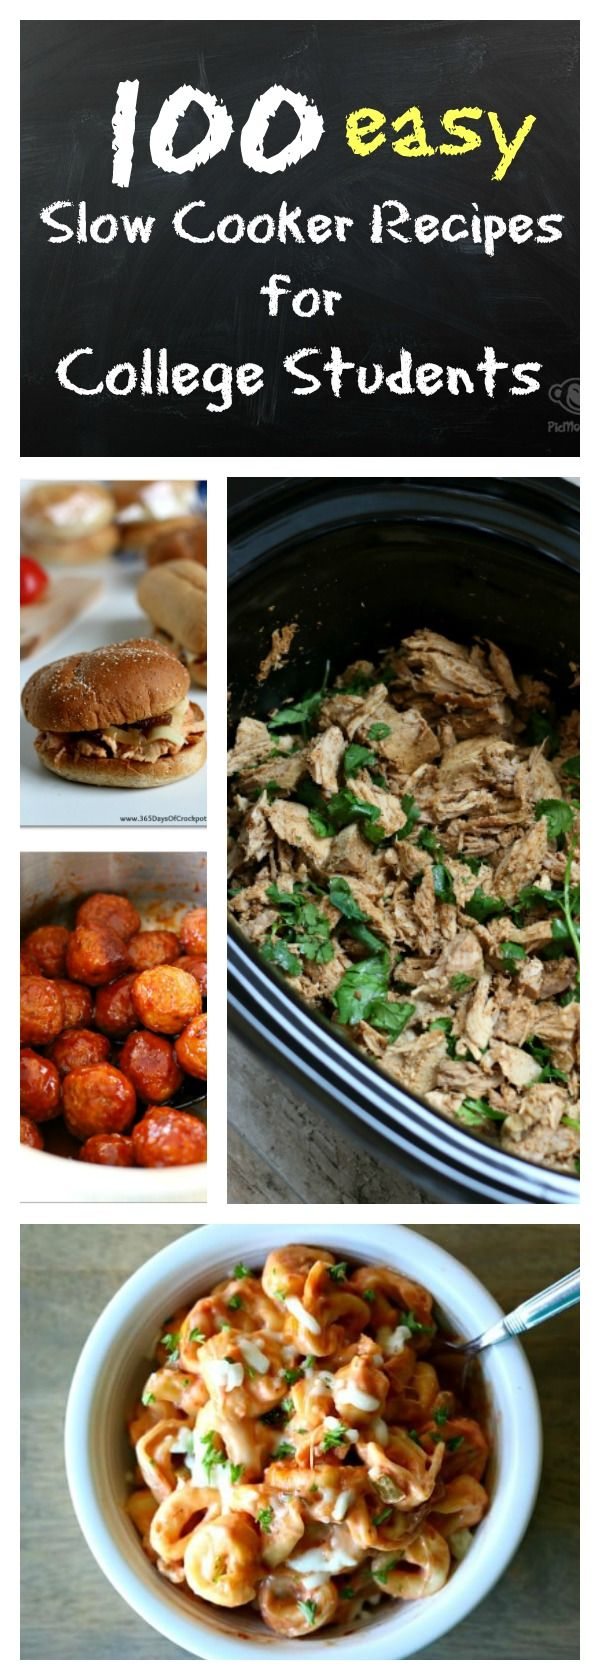 100 slow cooker recipes for college students: easy and quick to make recipes with 5 ingredients or less. As you pack for college remember your crockpot!